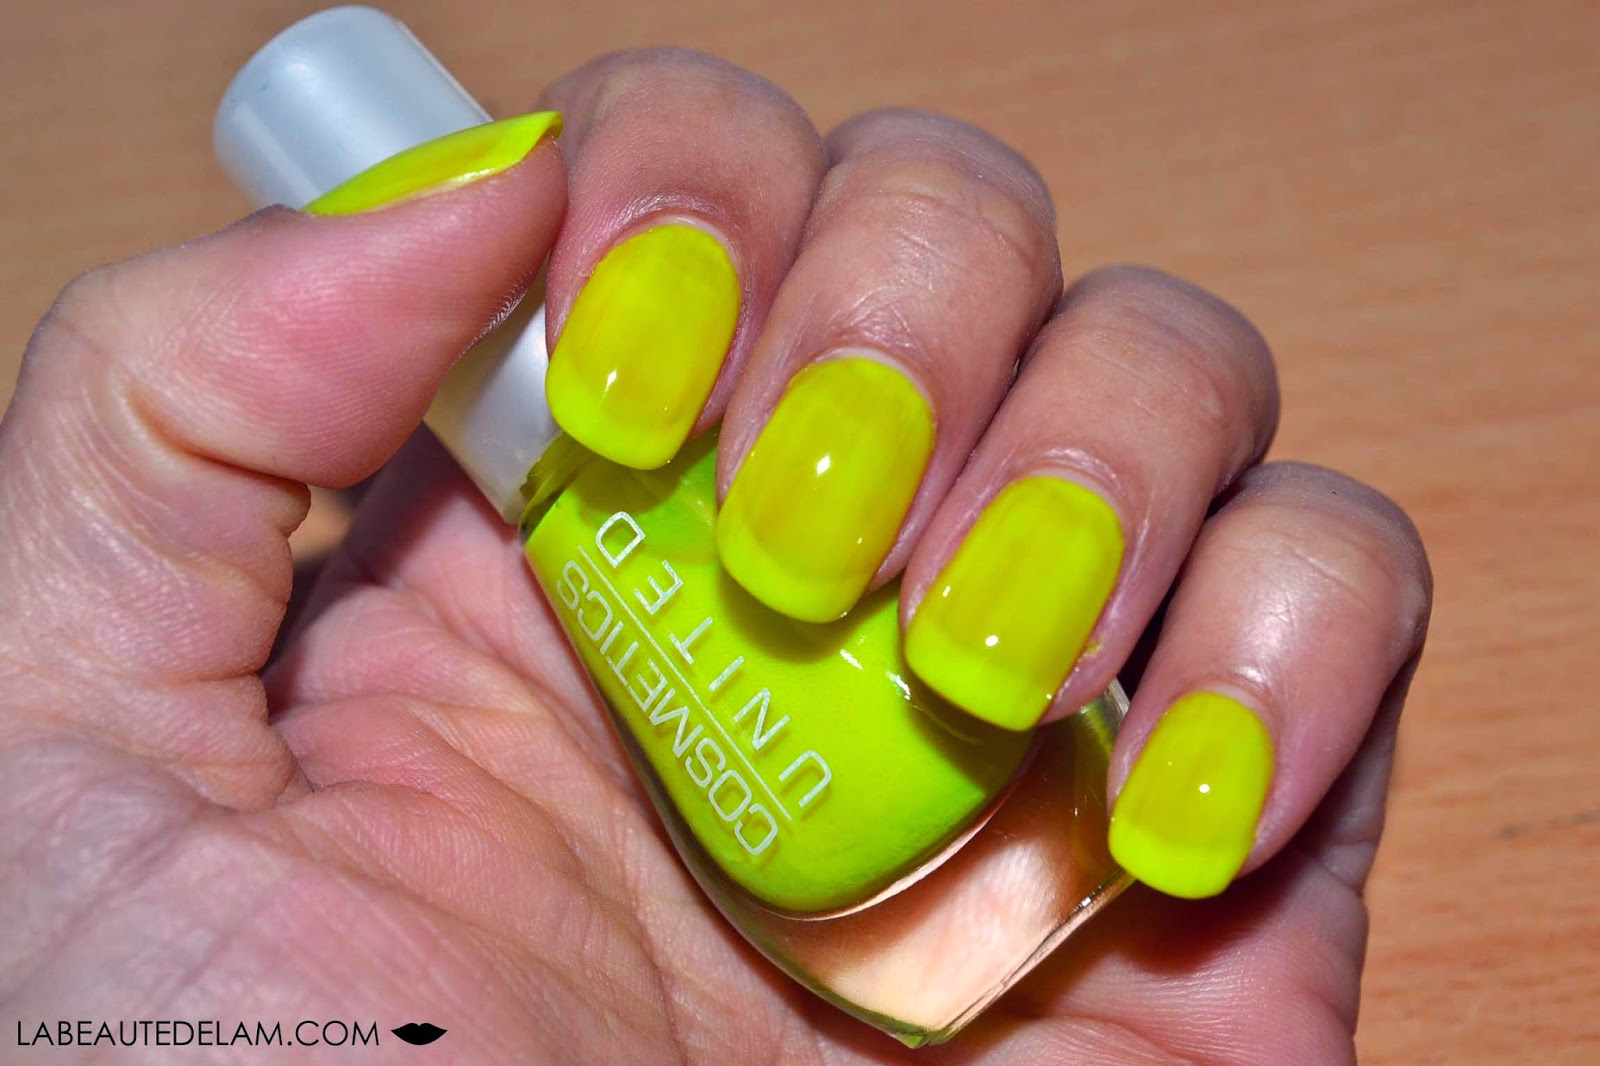 Cosmetics United  des ongles néon fluo !